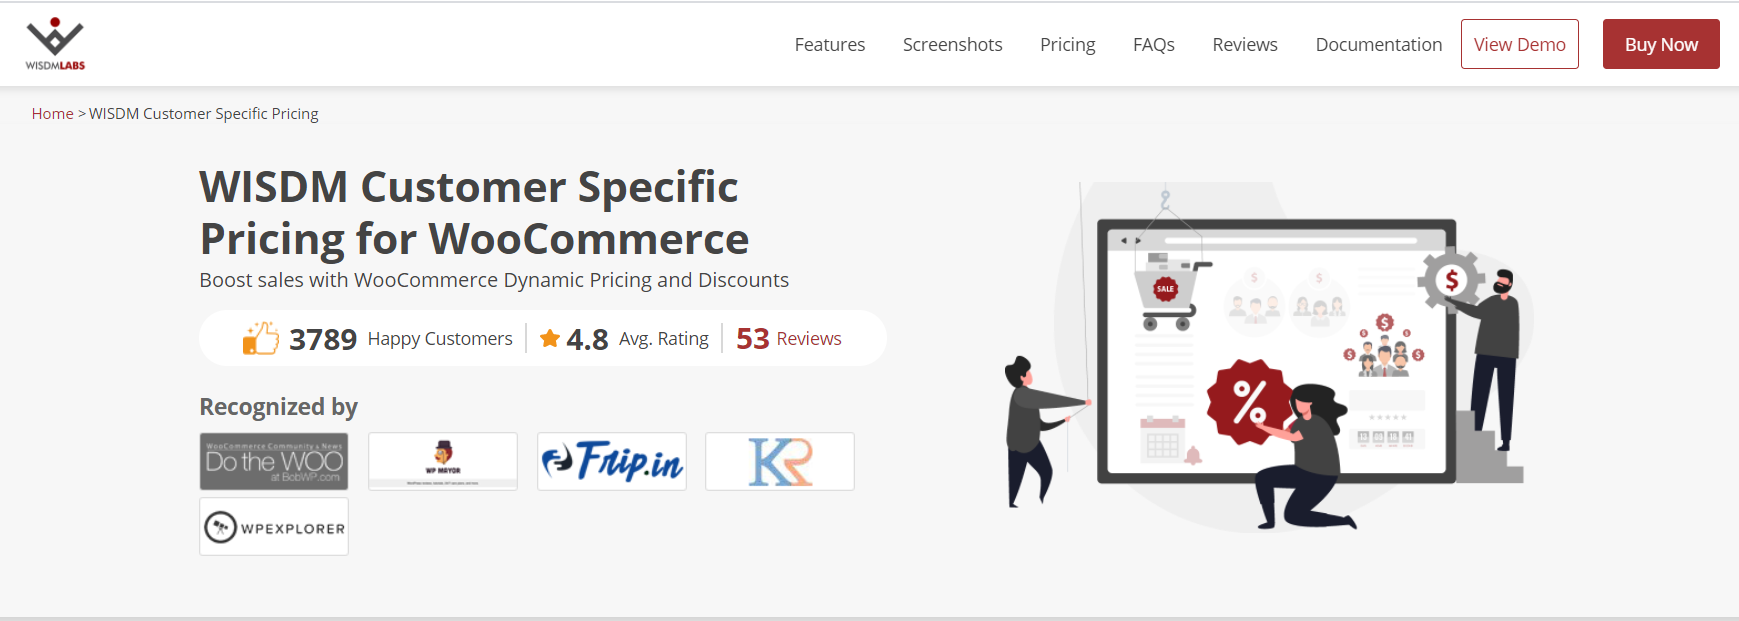 WISDM Customer Specific Pricing for WooCommerce